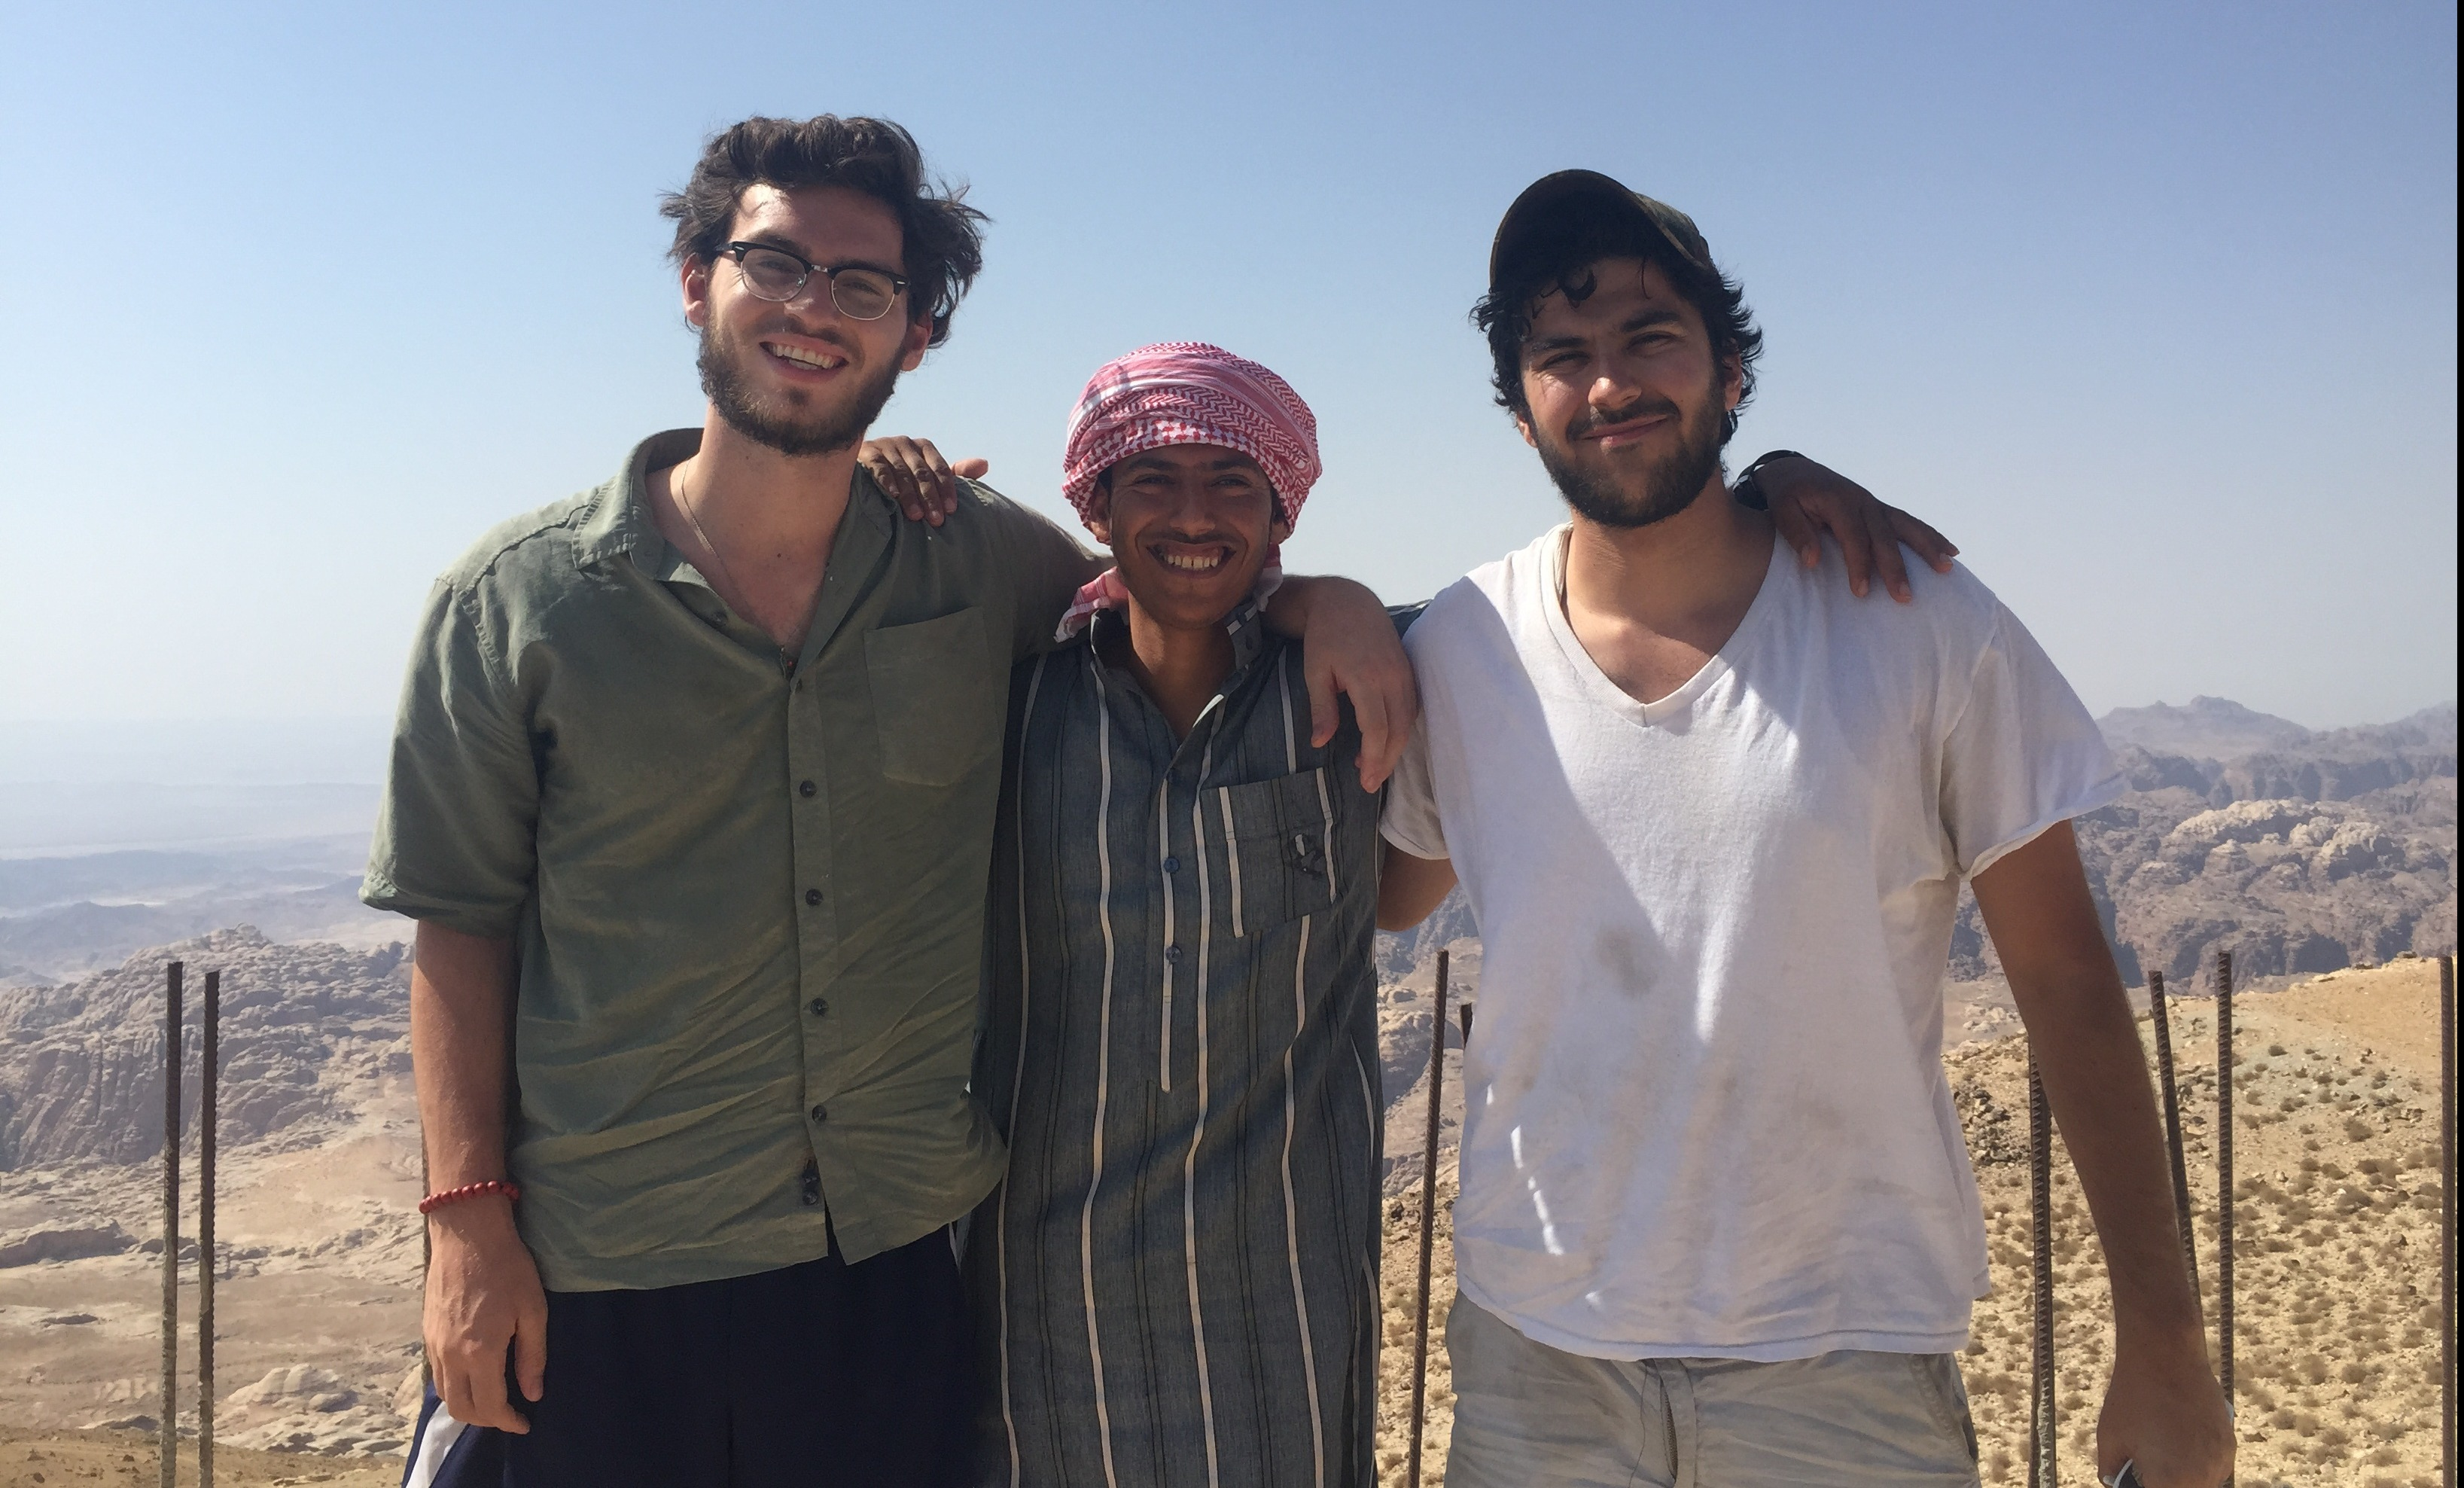 The Pros & Cons of Teaching English in the Middle East